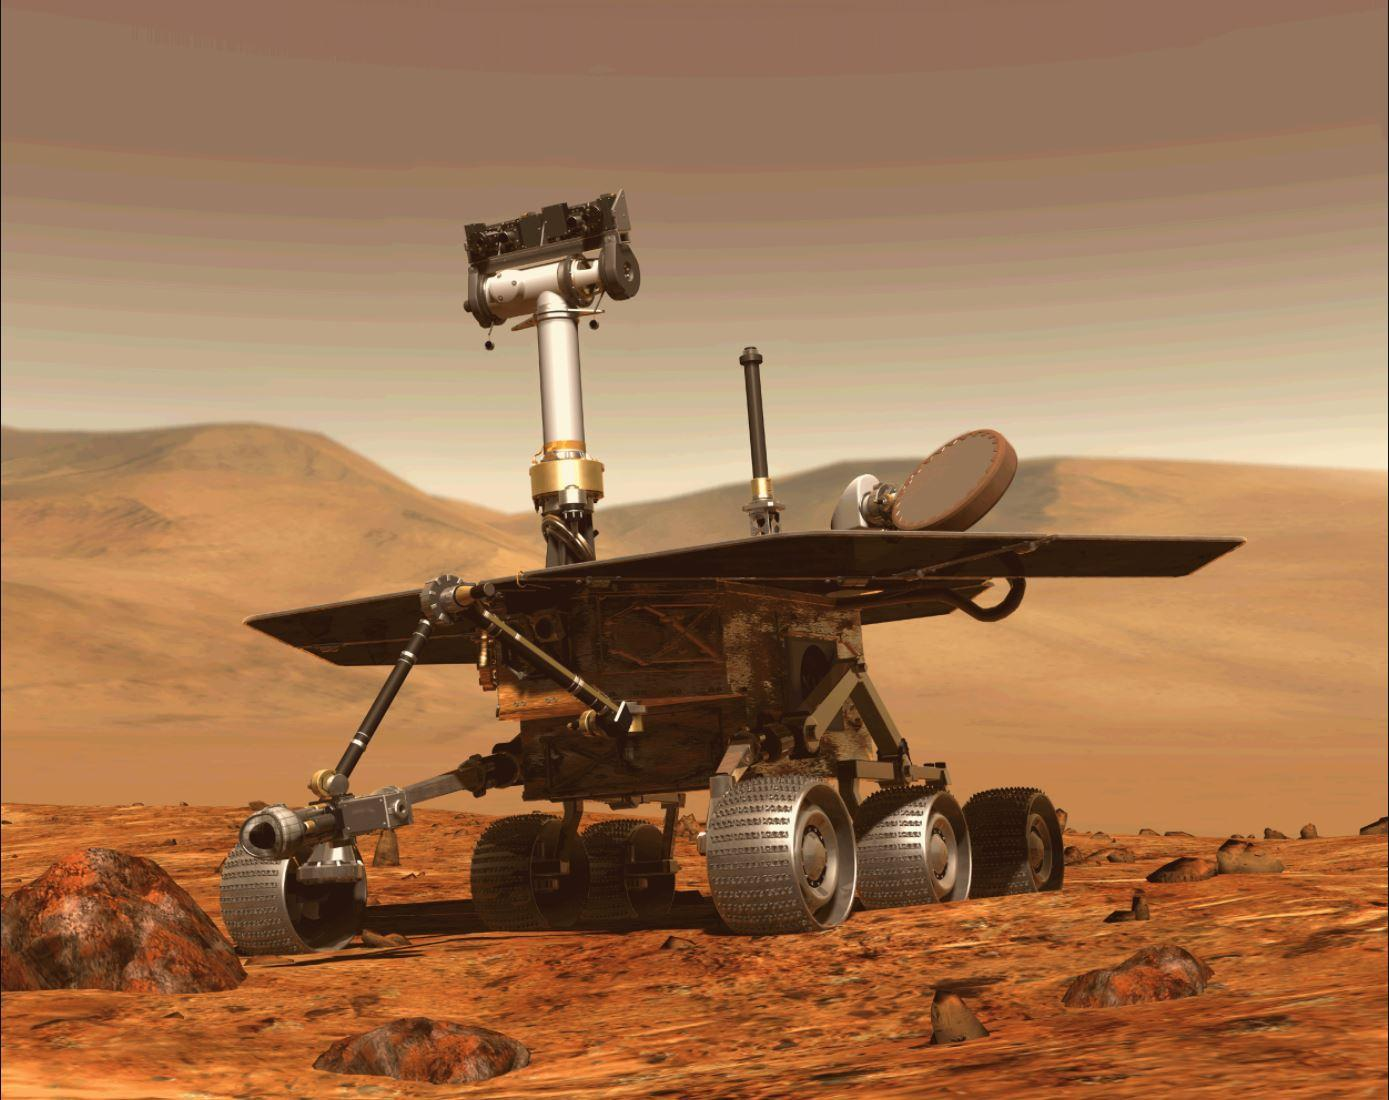 Nasa reveals the last thing its Opportunity Mars rover saw before it died